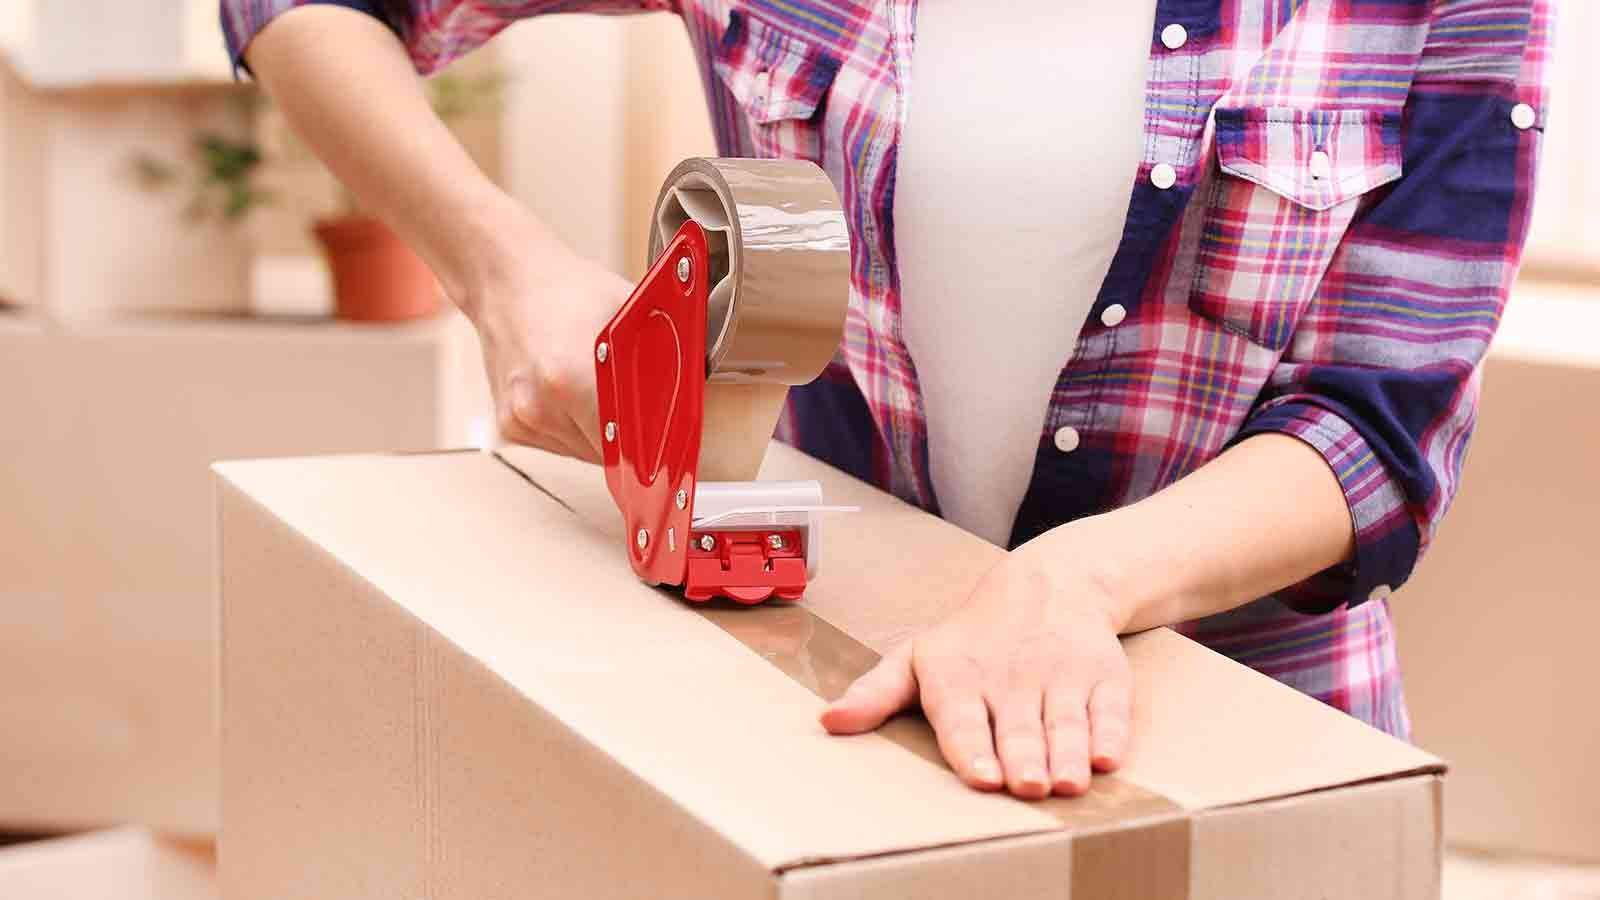 Woman's hands taping up a box with a tape gun.